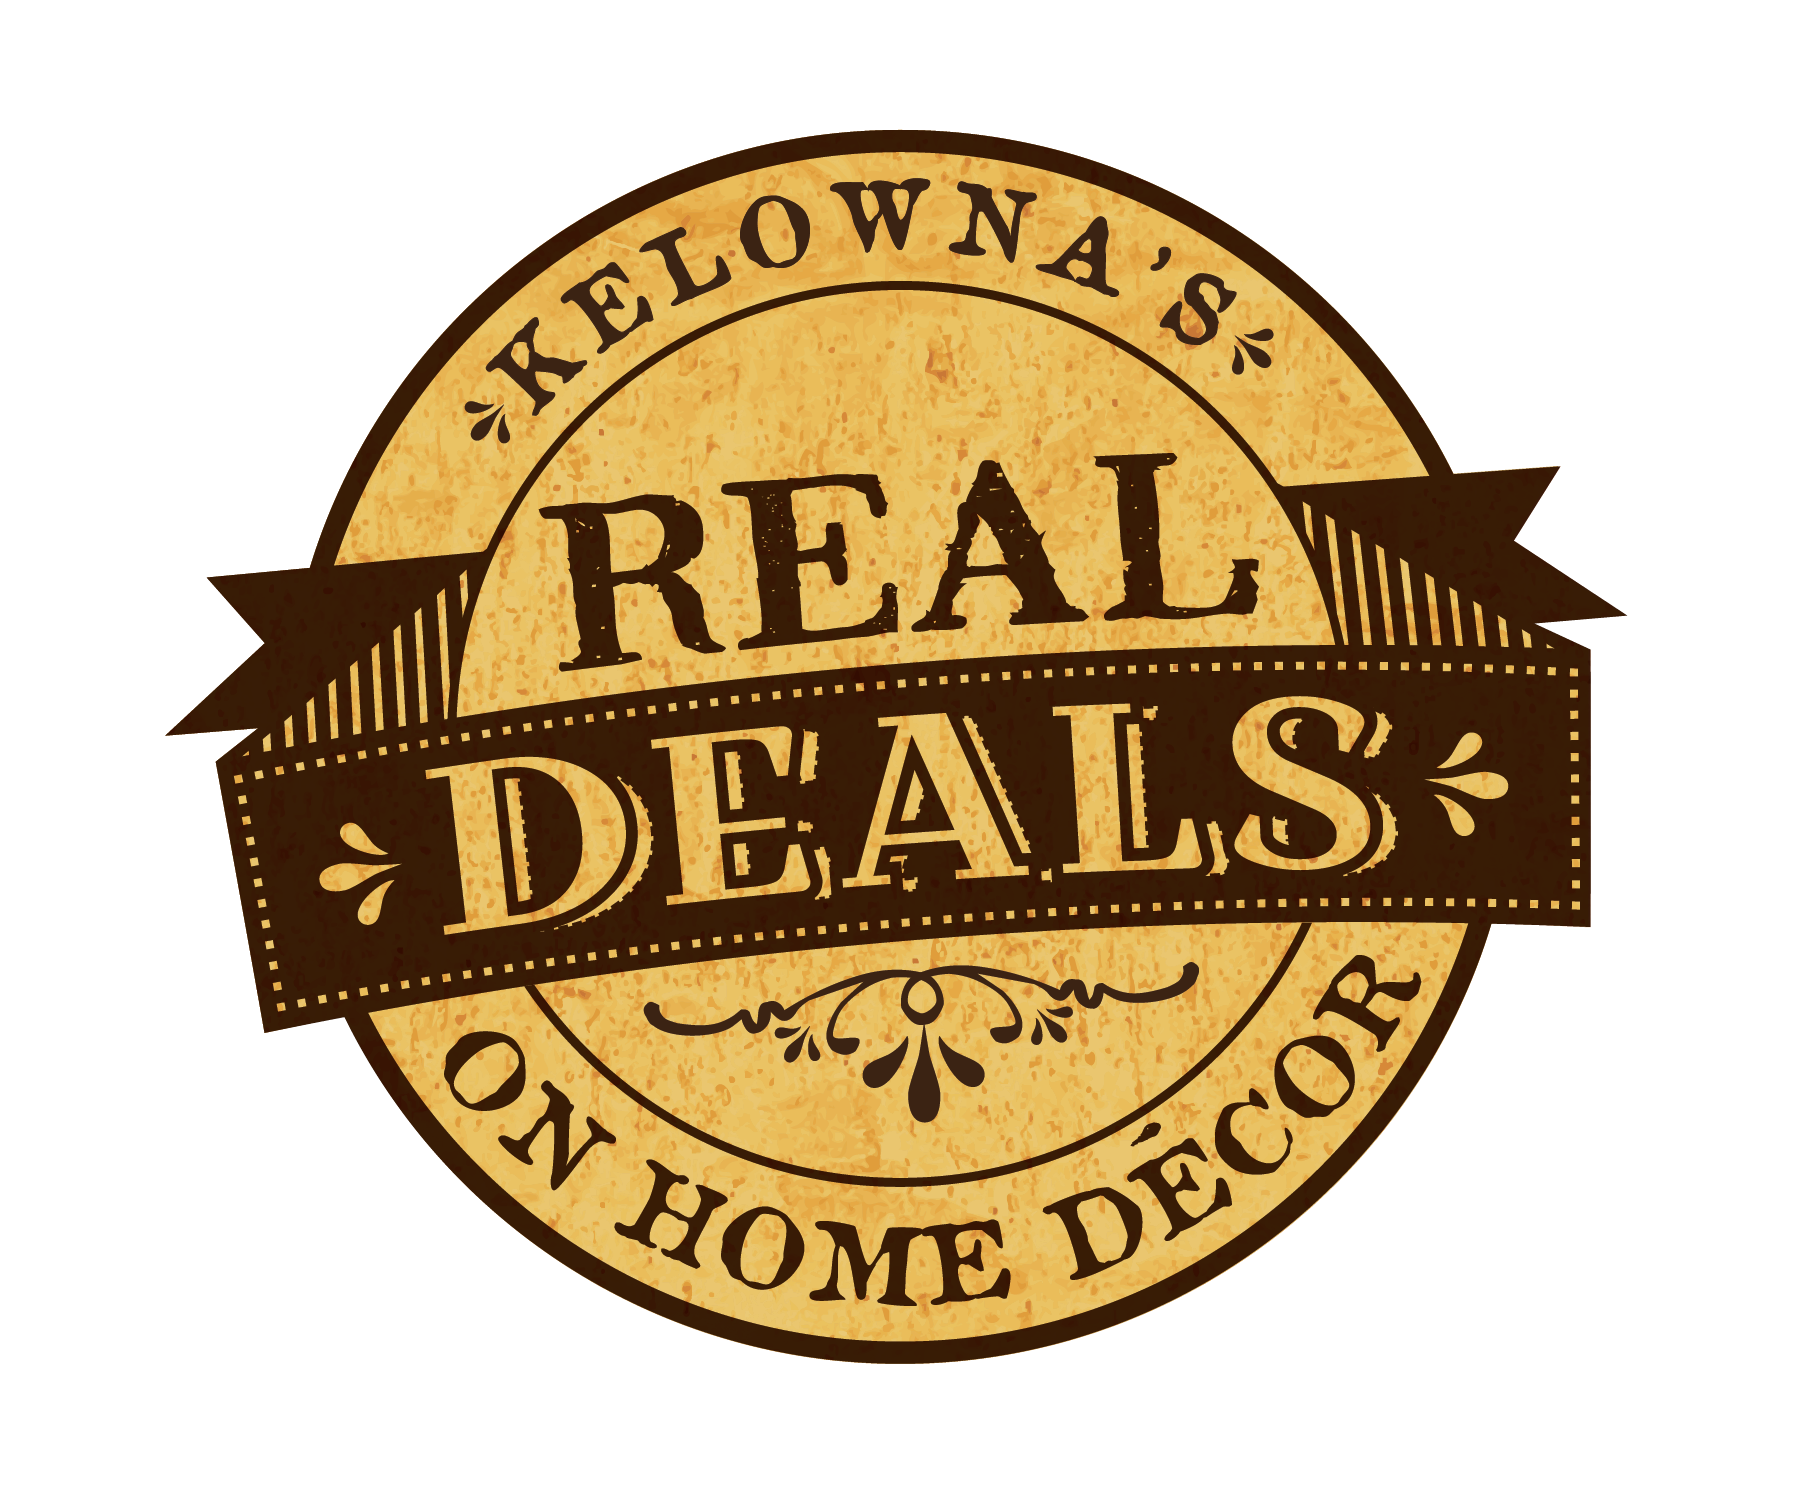 Become a fan kelowna 39 s real deals on home decor for Real deals on home decor